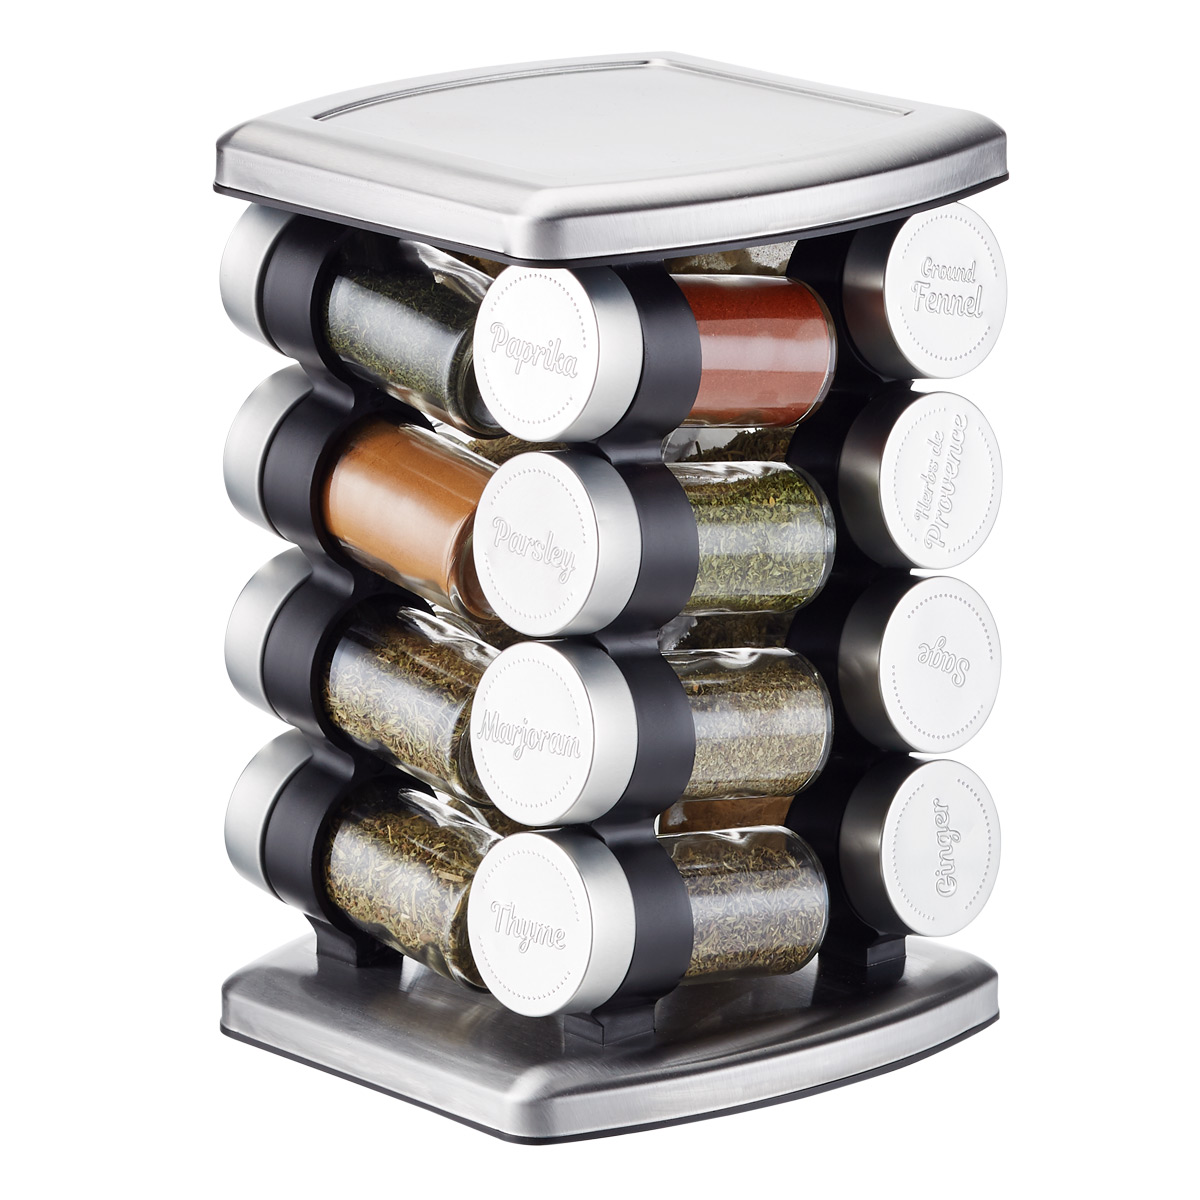 16-Bottle Revolving Spice Rack